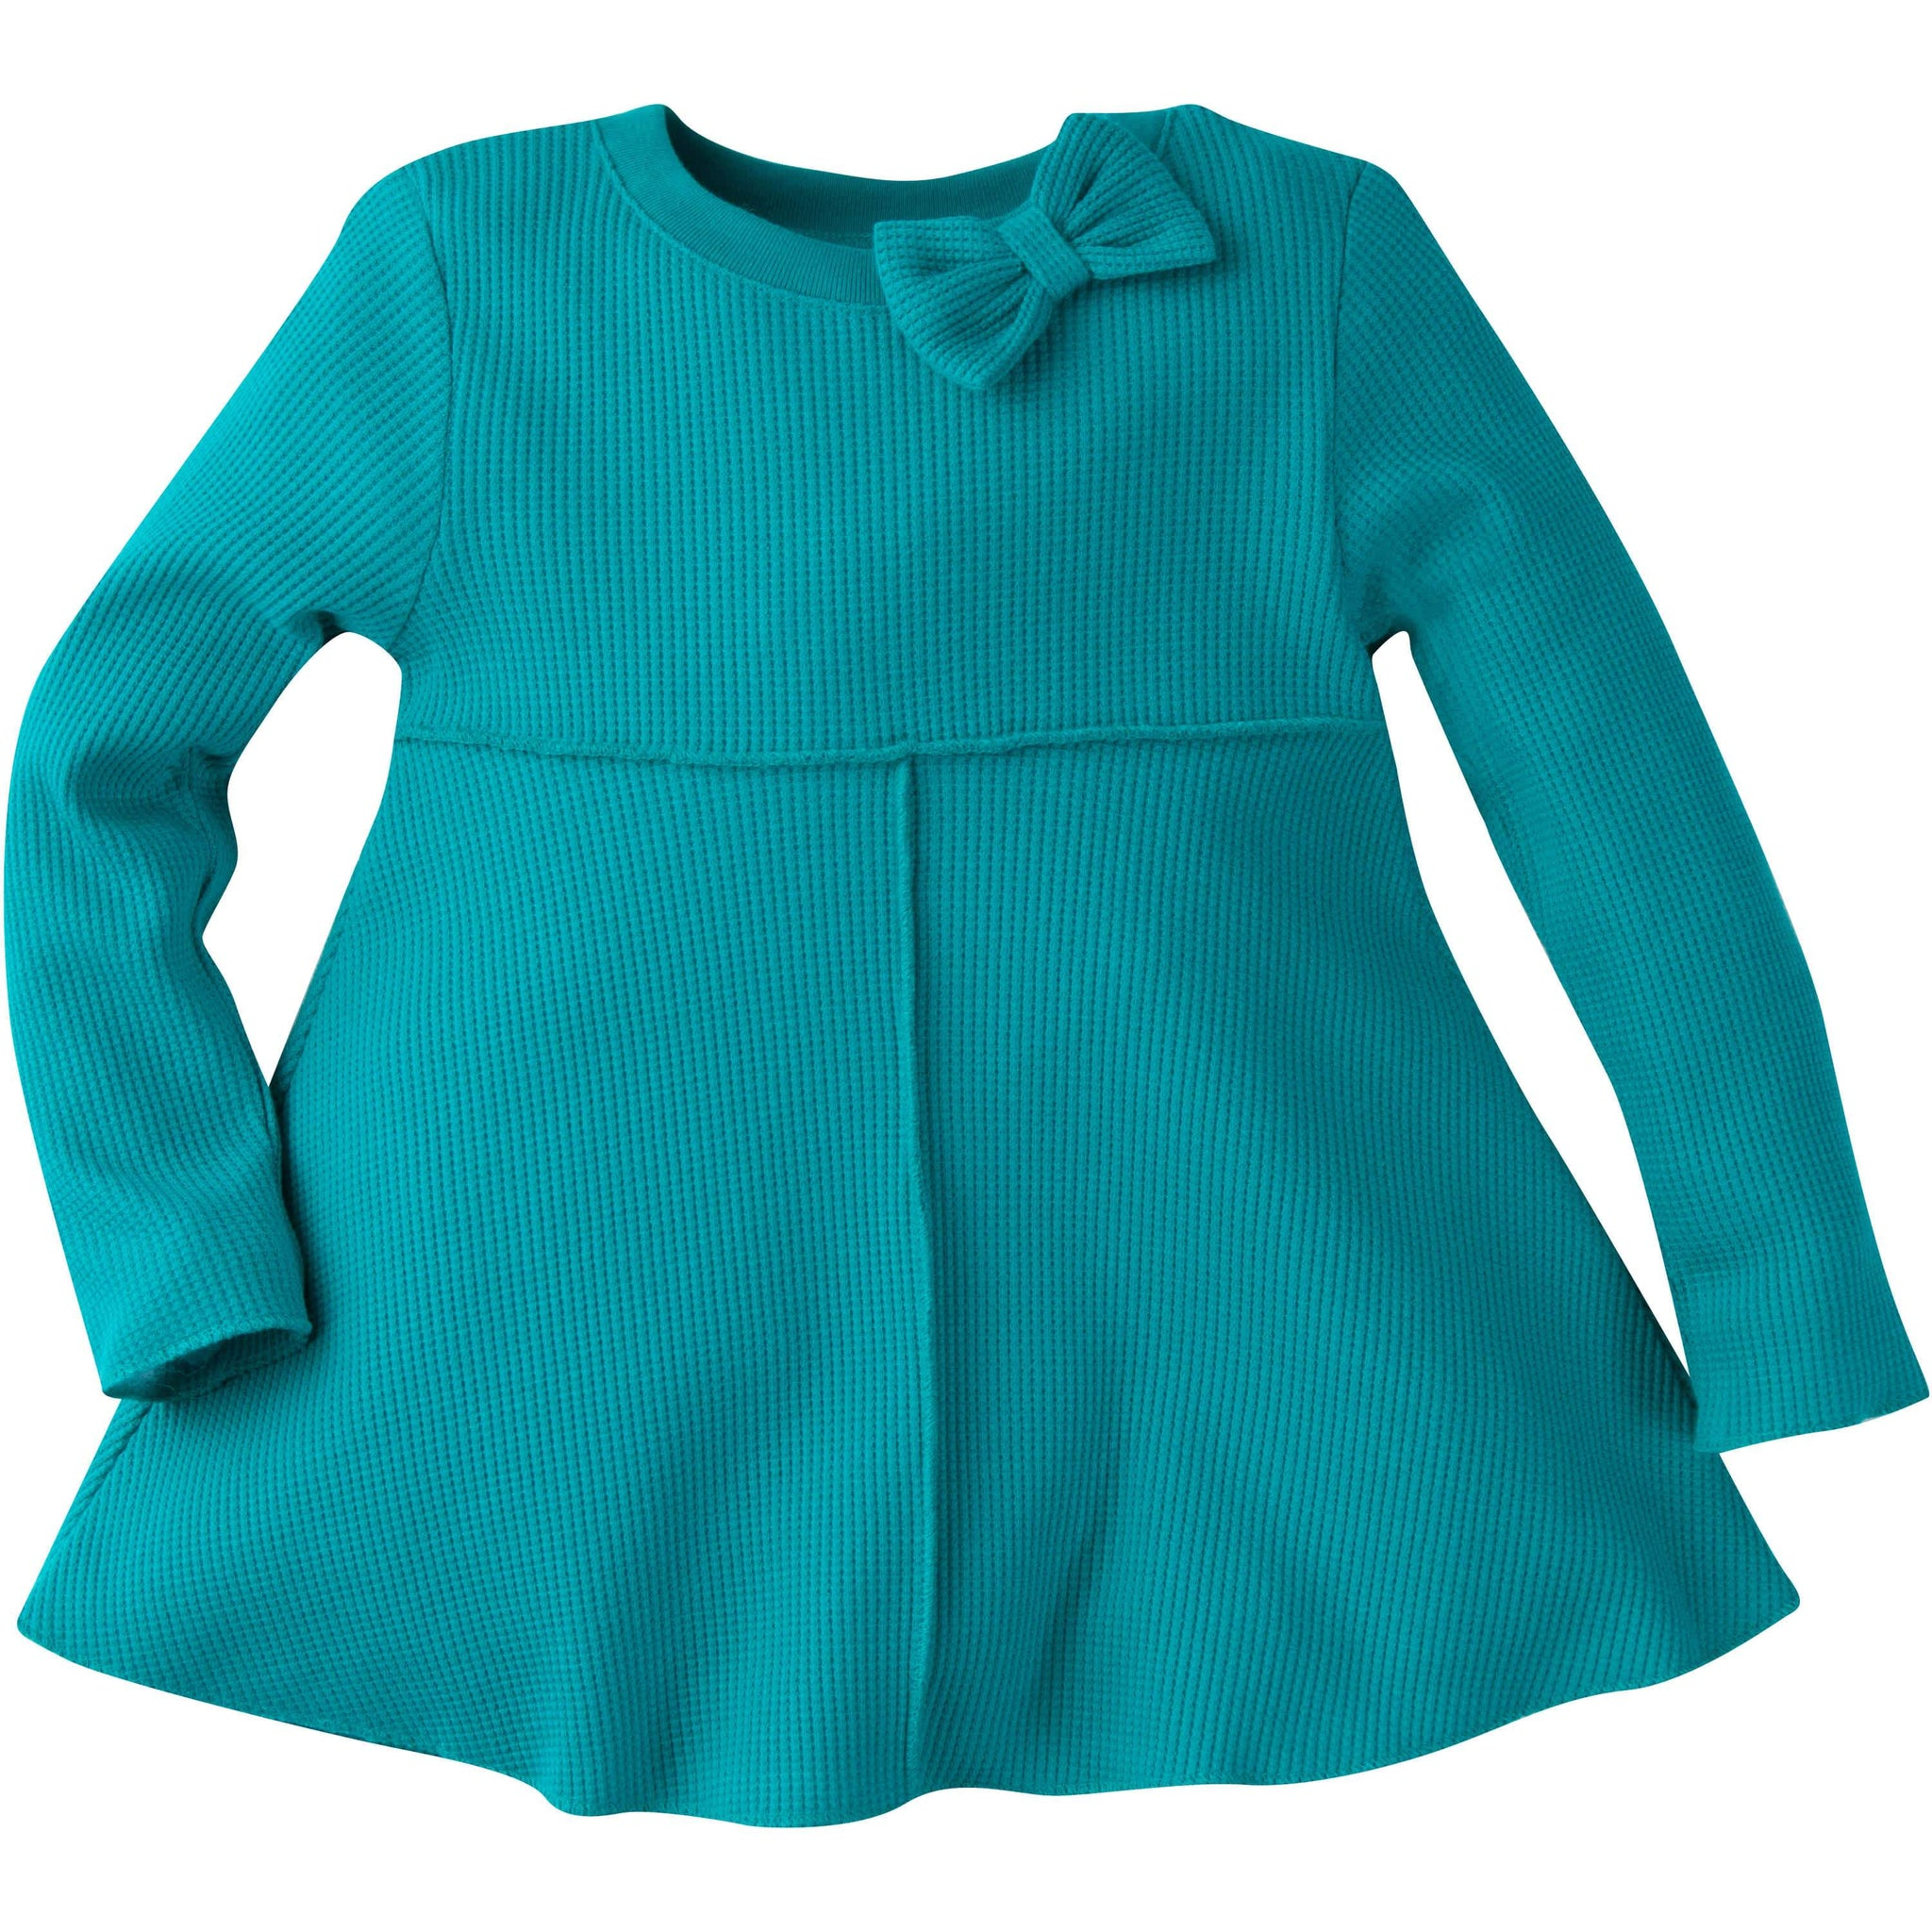 Gerber® Graduates Baby Girls Turquoise Long Sleeve Top-Gerber Childrenswear